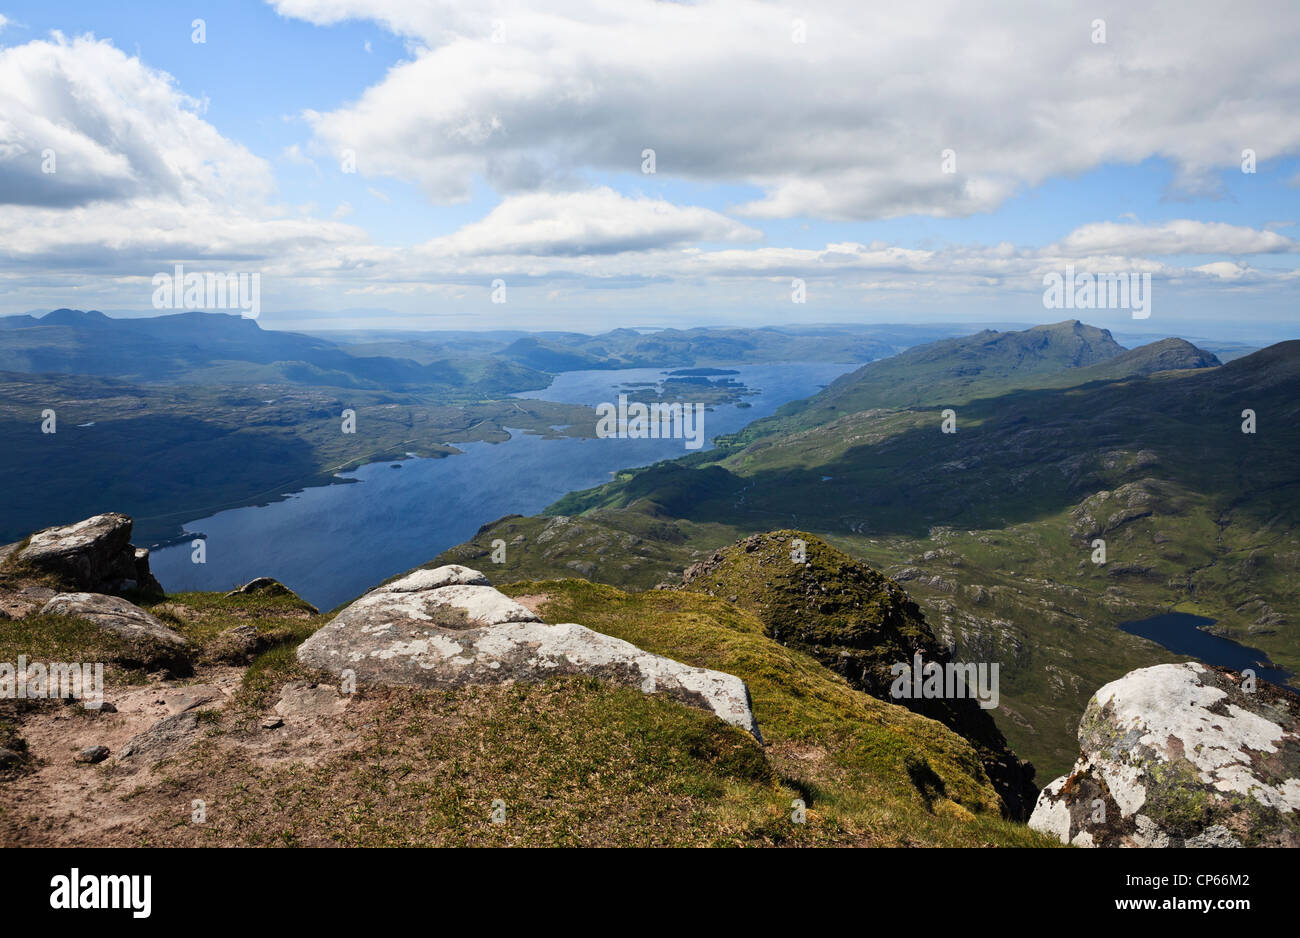 Loch Maree and the Letterewe forest seen from the top of Slioch - Stock Image